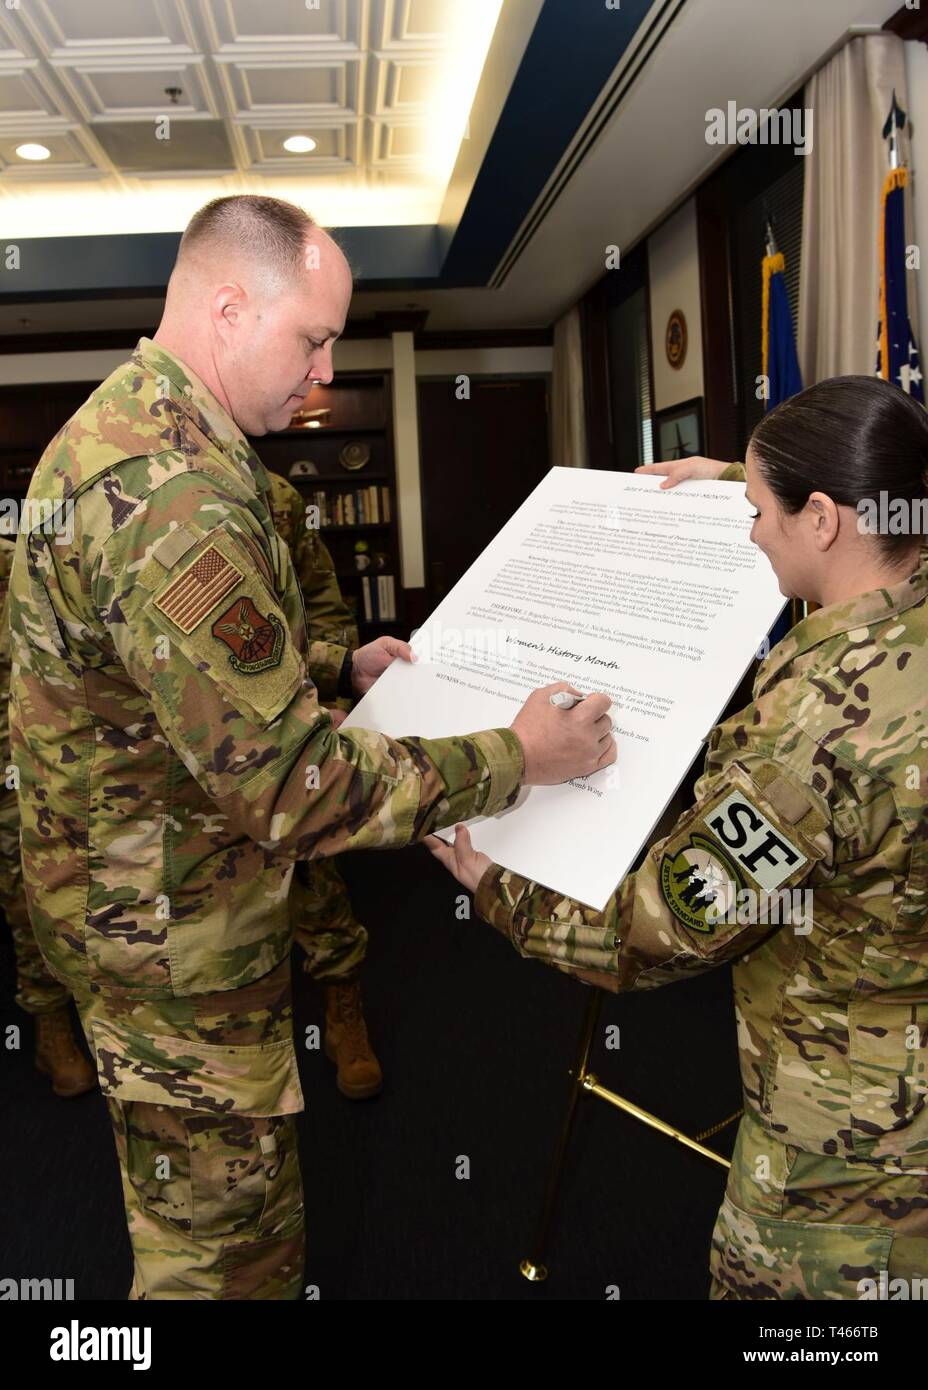 """Brig. Gen. John J. Nichols, the 509th Bomb Wing commander, signs the Women's History Month proclamation held by Master Sgt. Melissa Villalobos, the flight chief for Bravo Flight, 509th Security Forces Squadron on March 4, 2019 at Whiteman Air Force Base, Missouri. The theme of Women's History Month for 2019 is """"Visionary Women: Champions of Peace and Nonviolence."""" - Stock Image"""